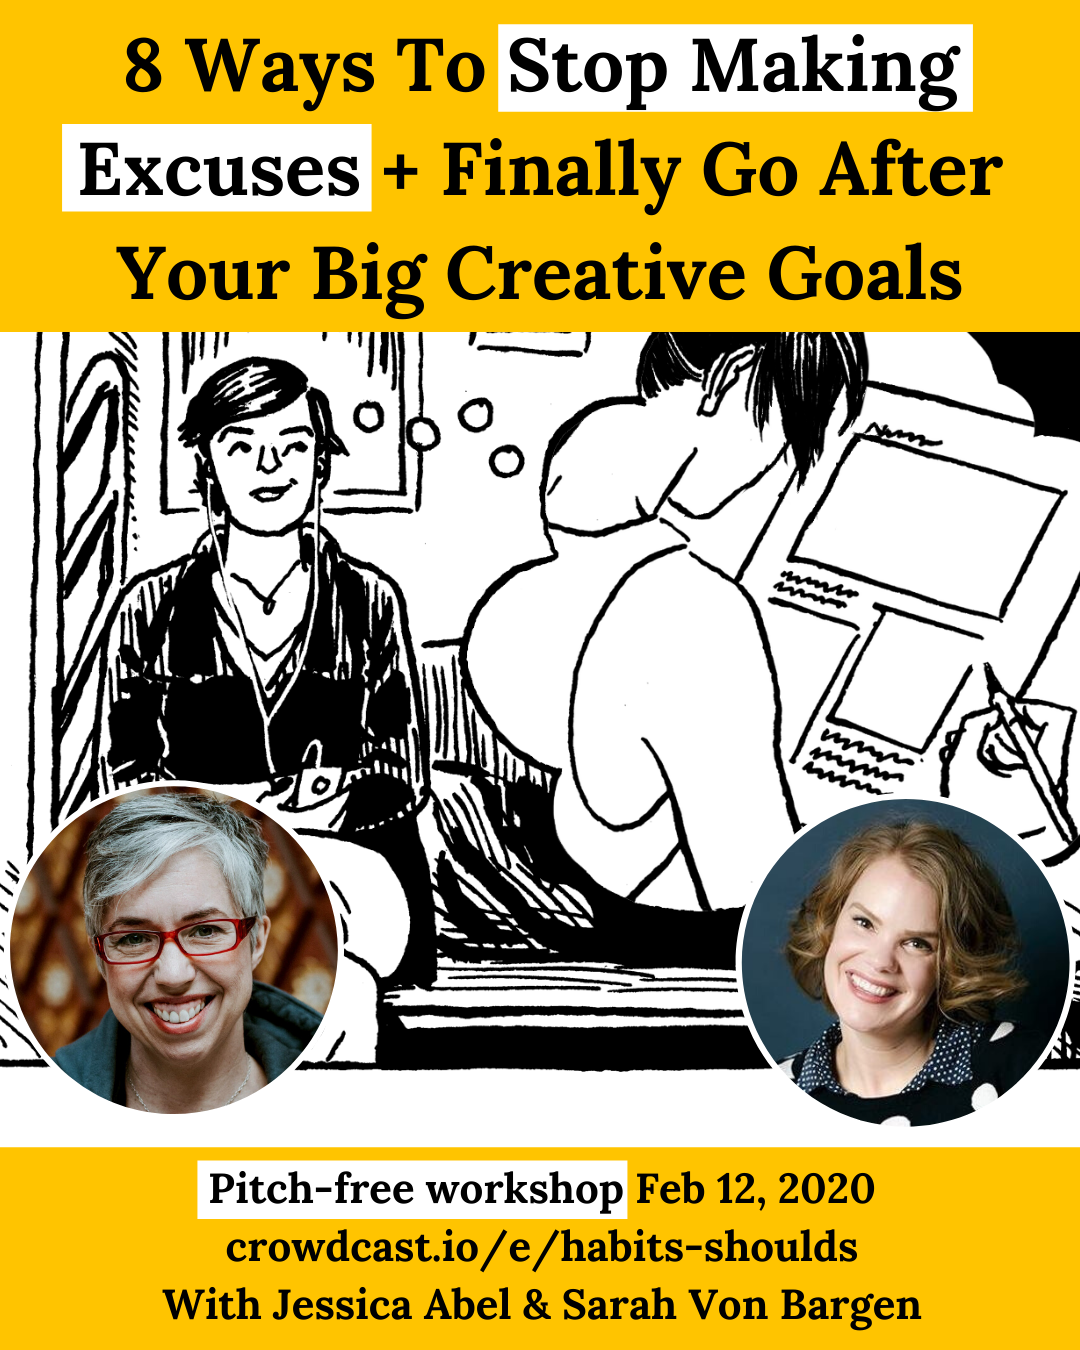 Jessica Abel and Sarah Von Bargen - 8 Ways To Stop Making Excuses + Finally Go After Your Big Creative Goals